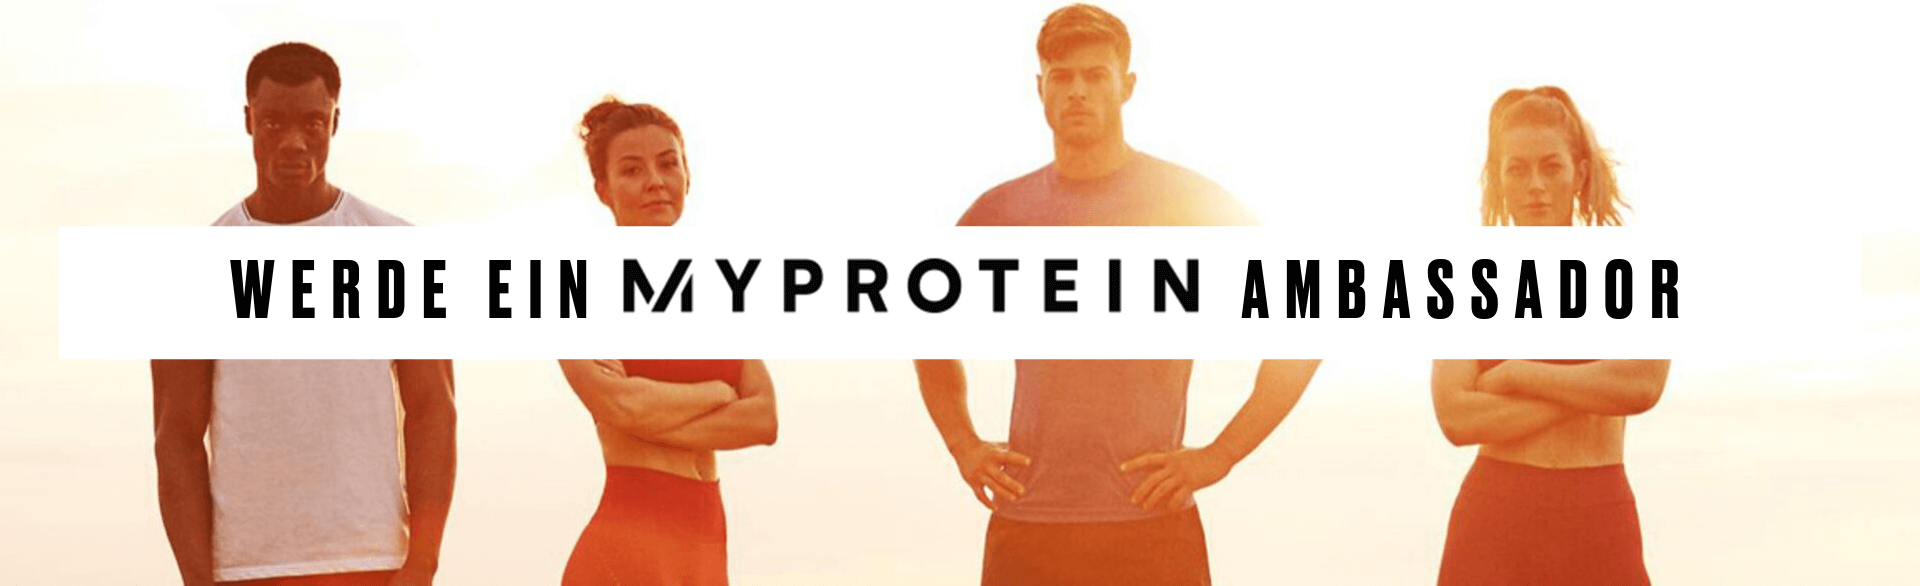 Myprotein Influencer